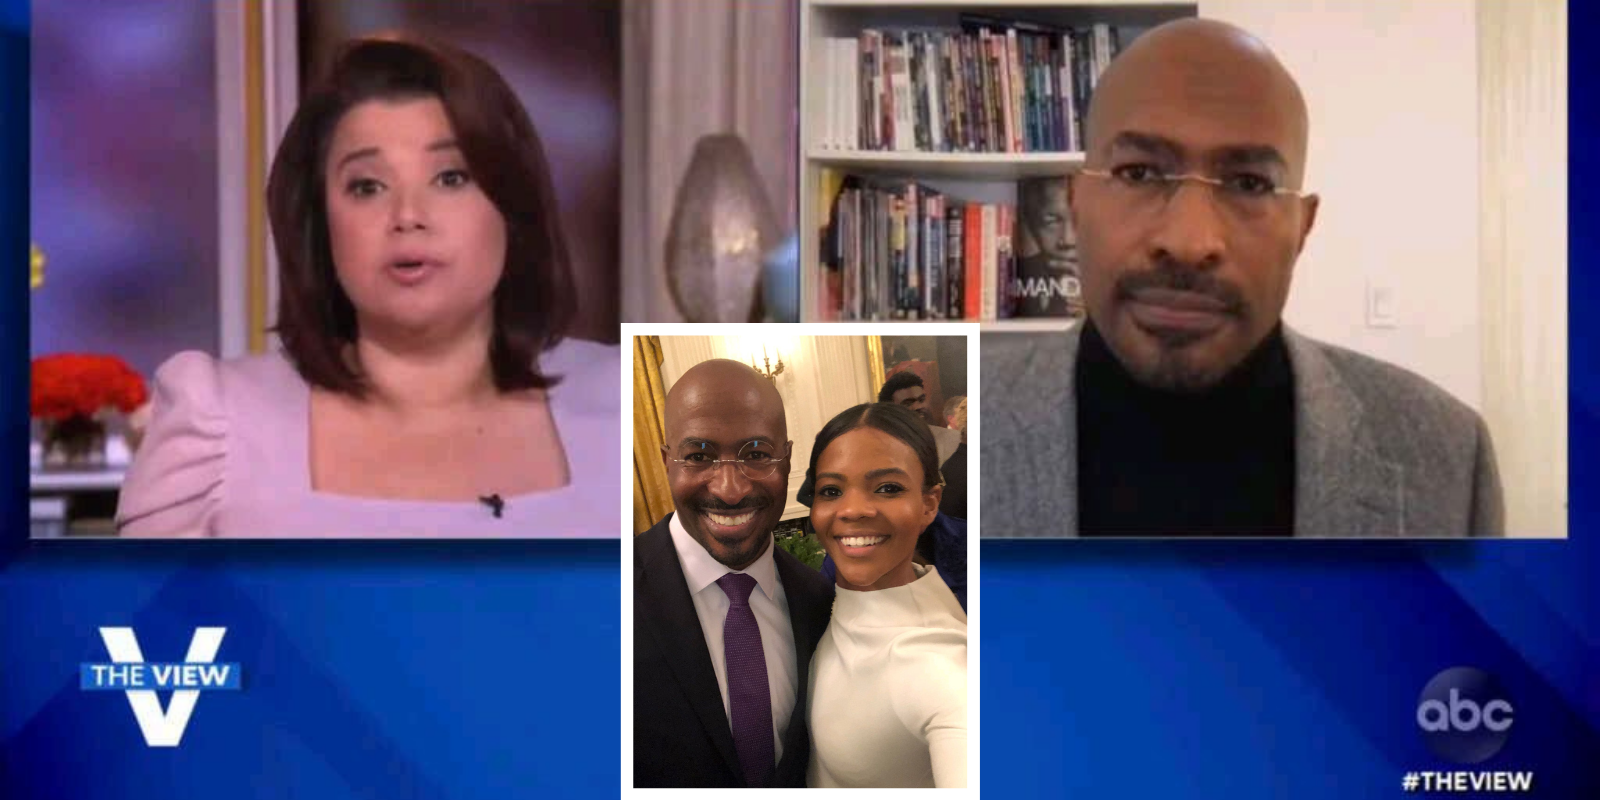 WATCH: View host scolds Van Jones for taking a selfie with Candace Owens